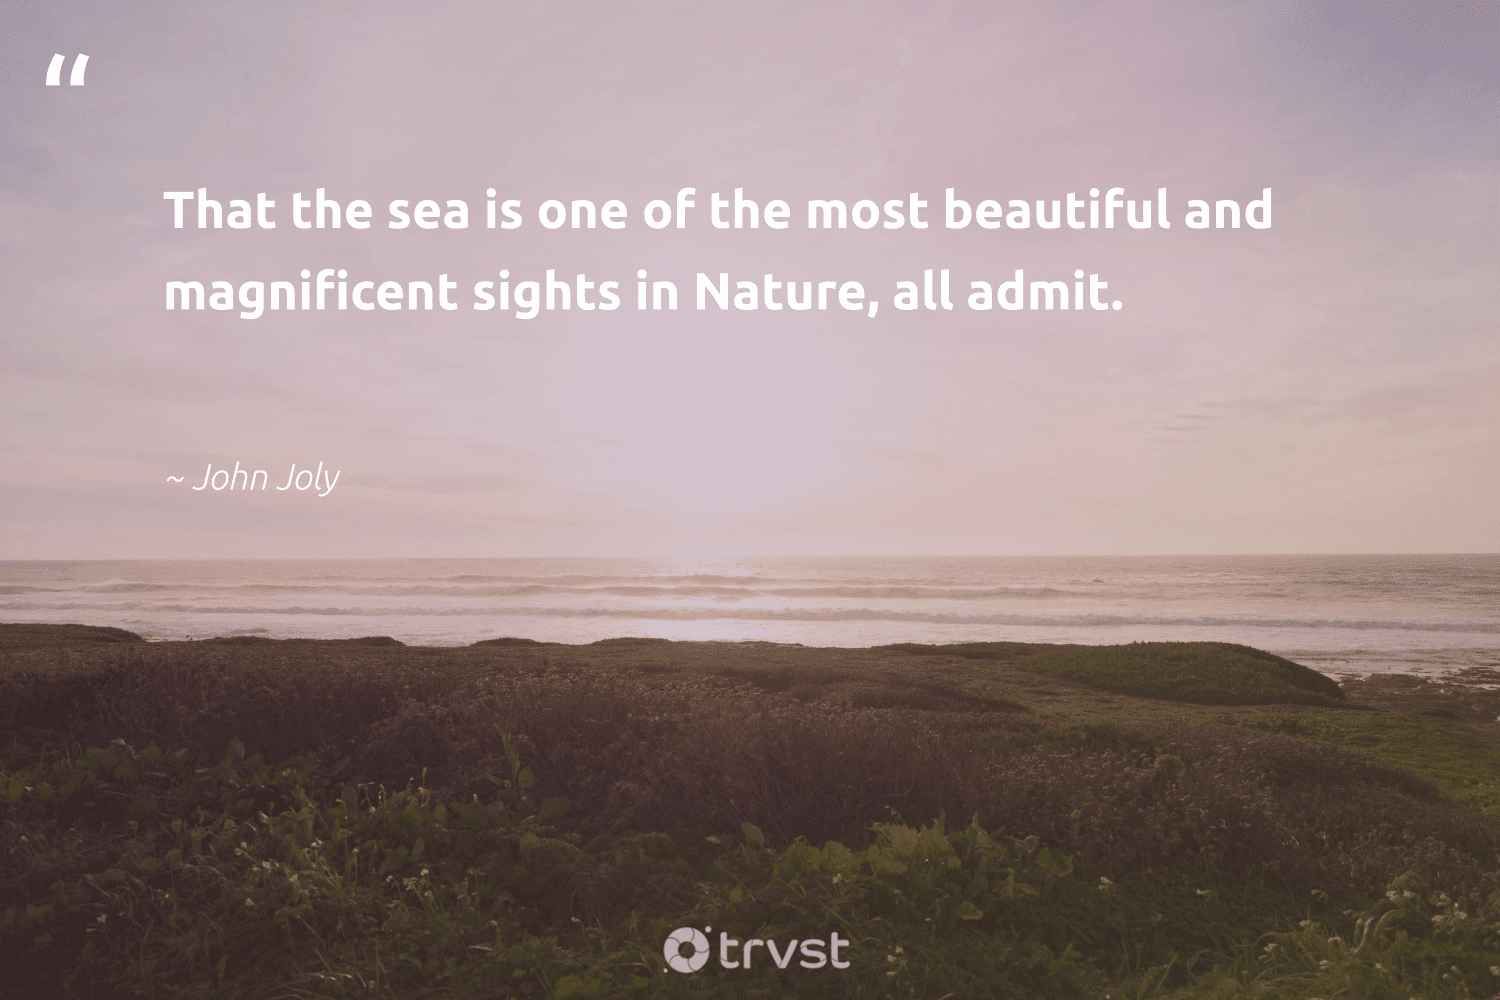 """""""That the sea is one of the most beautiful and magnificent sights in Nature, all admit.""""  - John Joly #trvst #quotes #environment #nature #mothernature #wildernessnation #green #impact #conservation #naturelovers #getoutside #dotherightthing"""